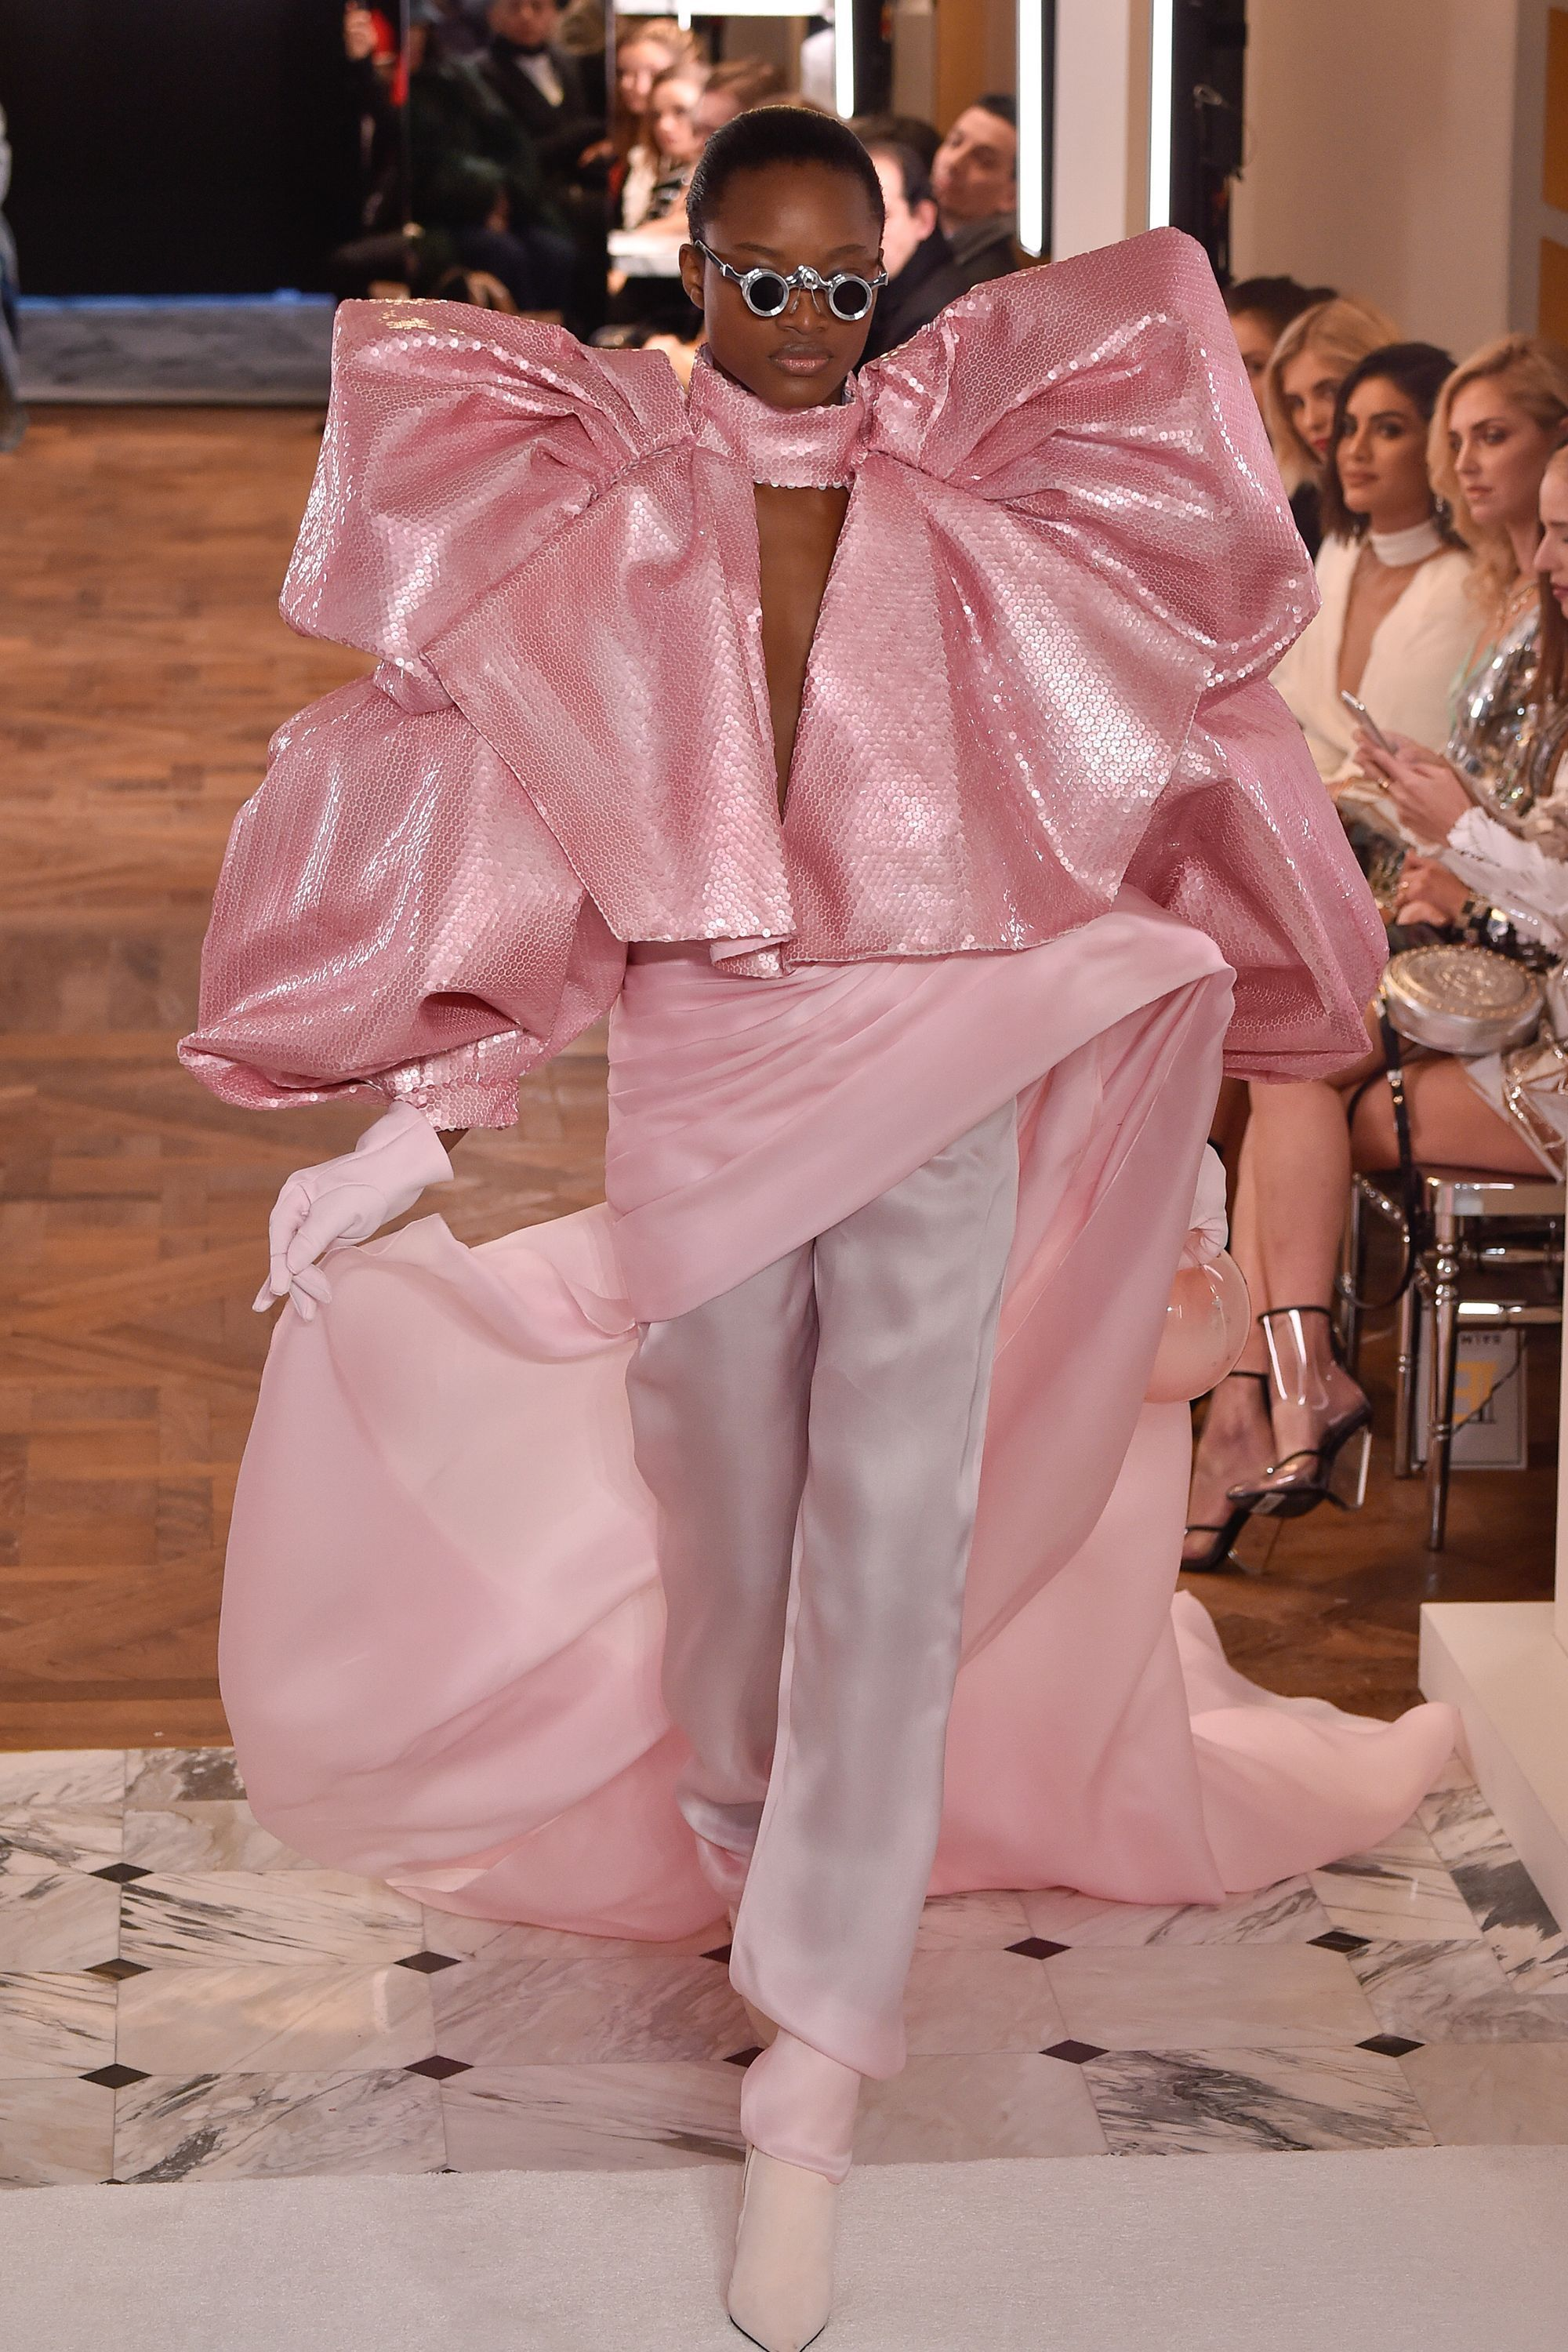 Photo of 11 Campy Runway Looks We're Dying To See At The Met Gala